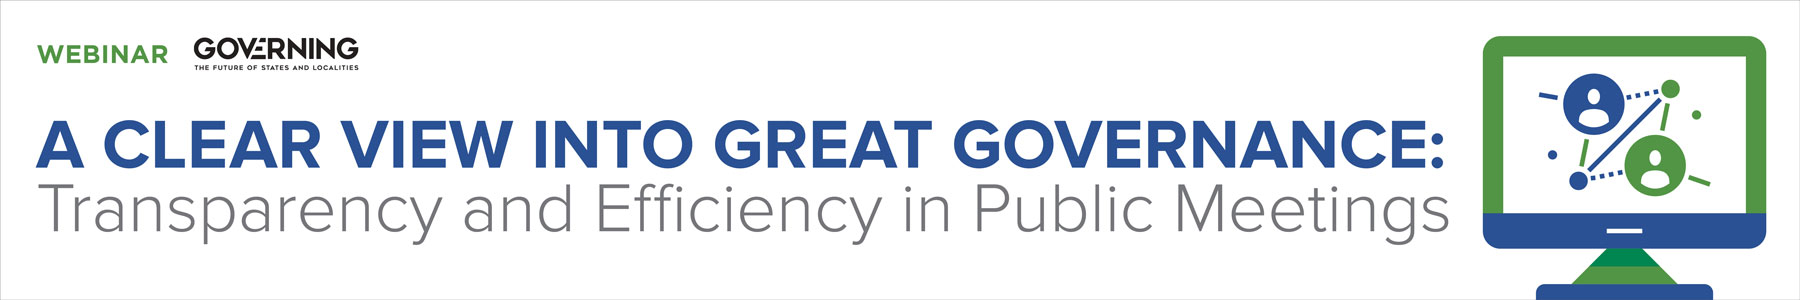 A Clear View into Great Governance: Transparency and Efficiency in Public Meetings